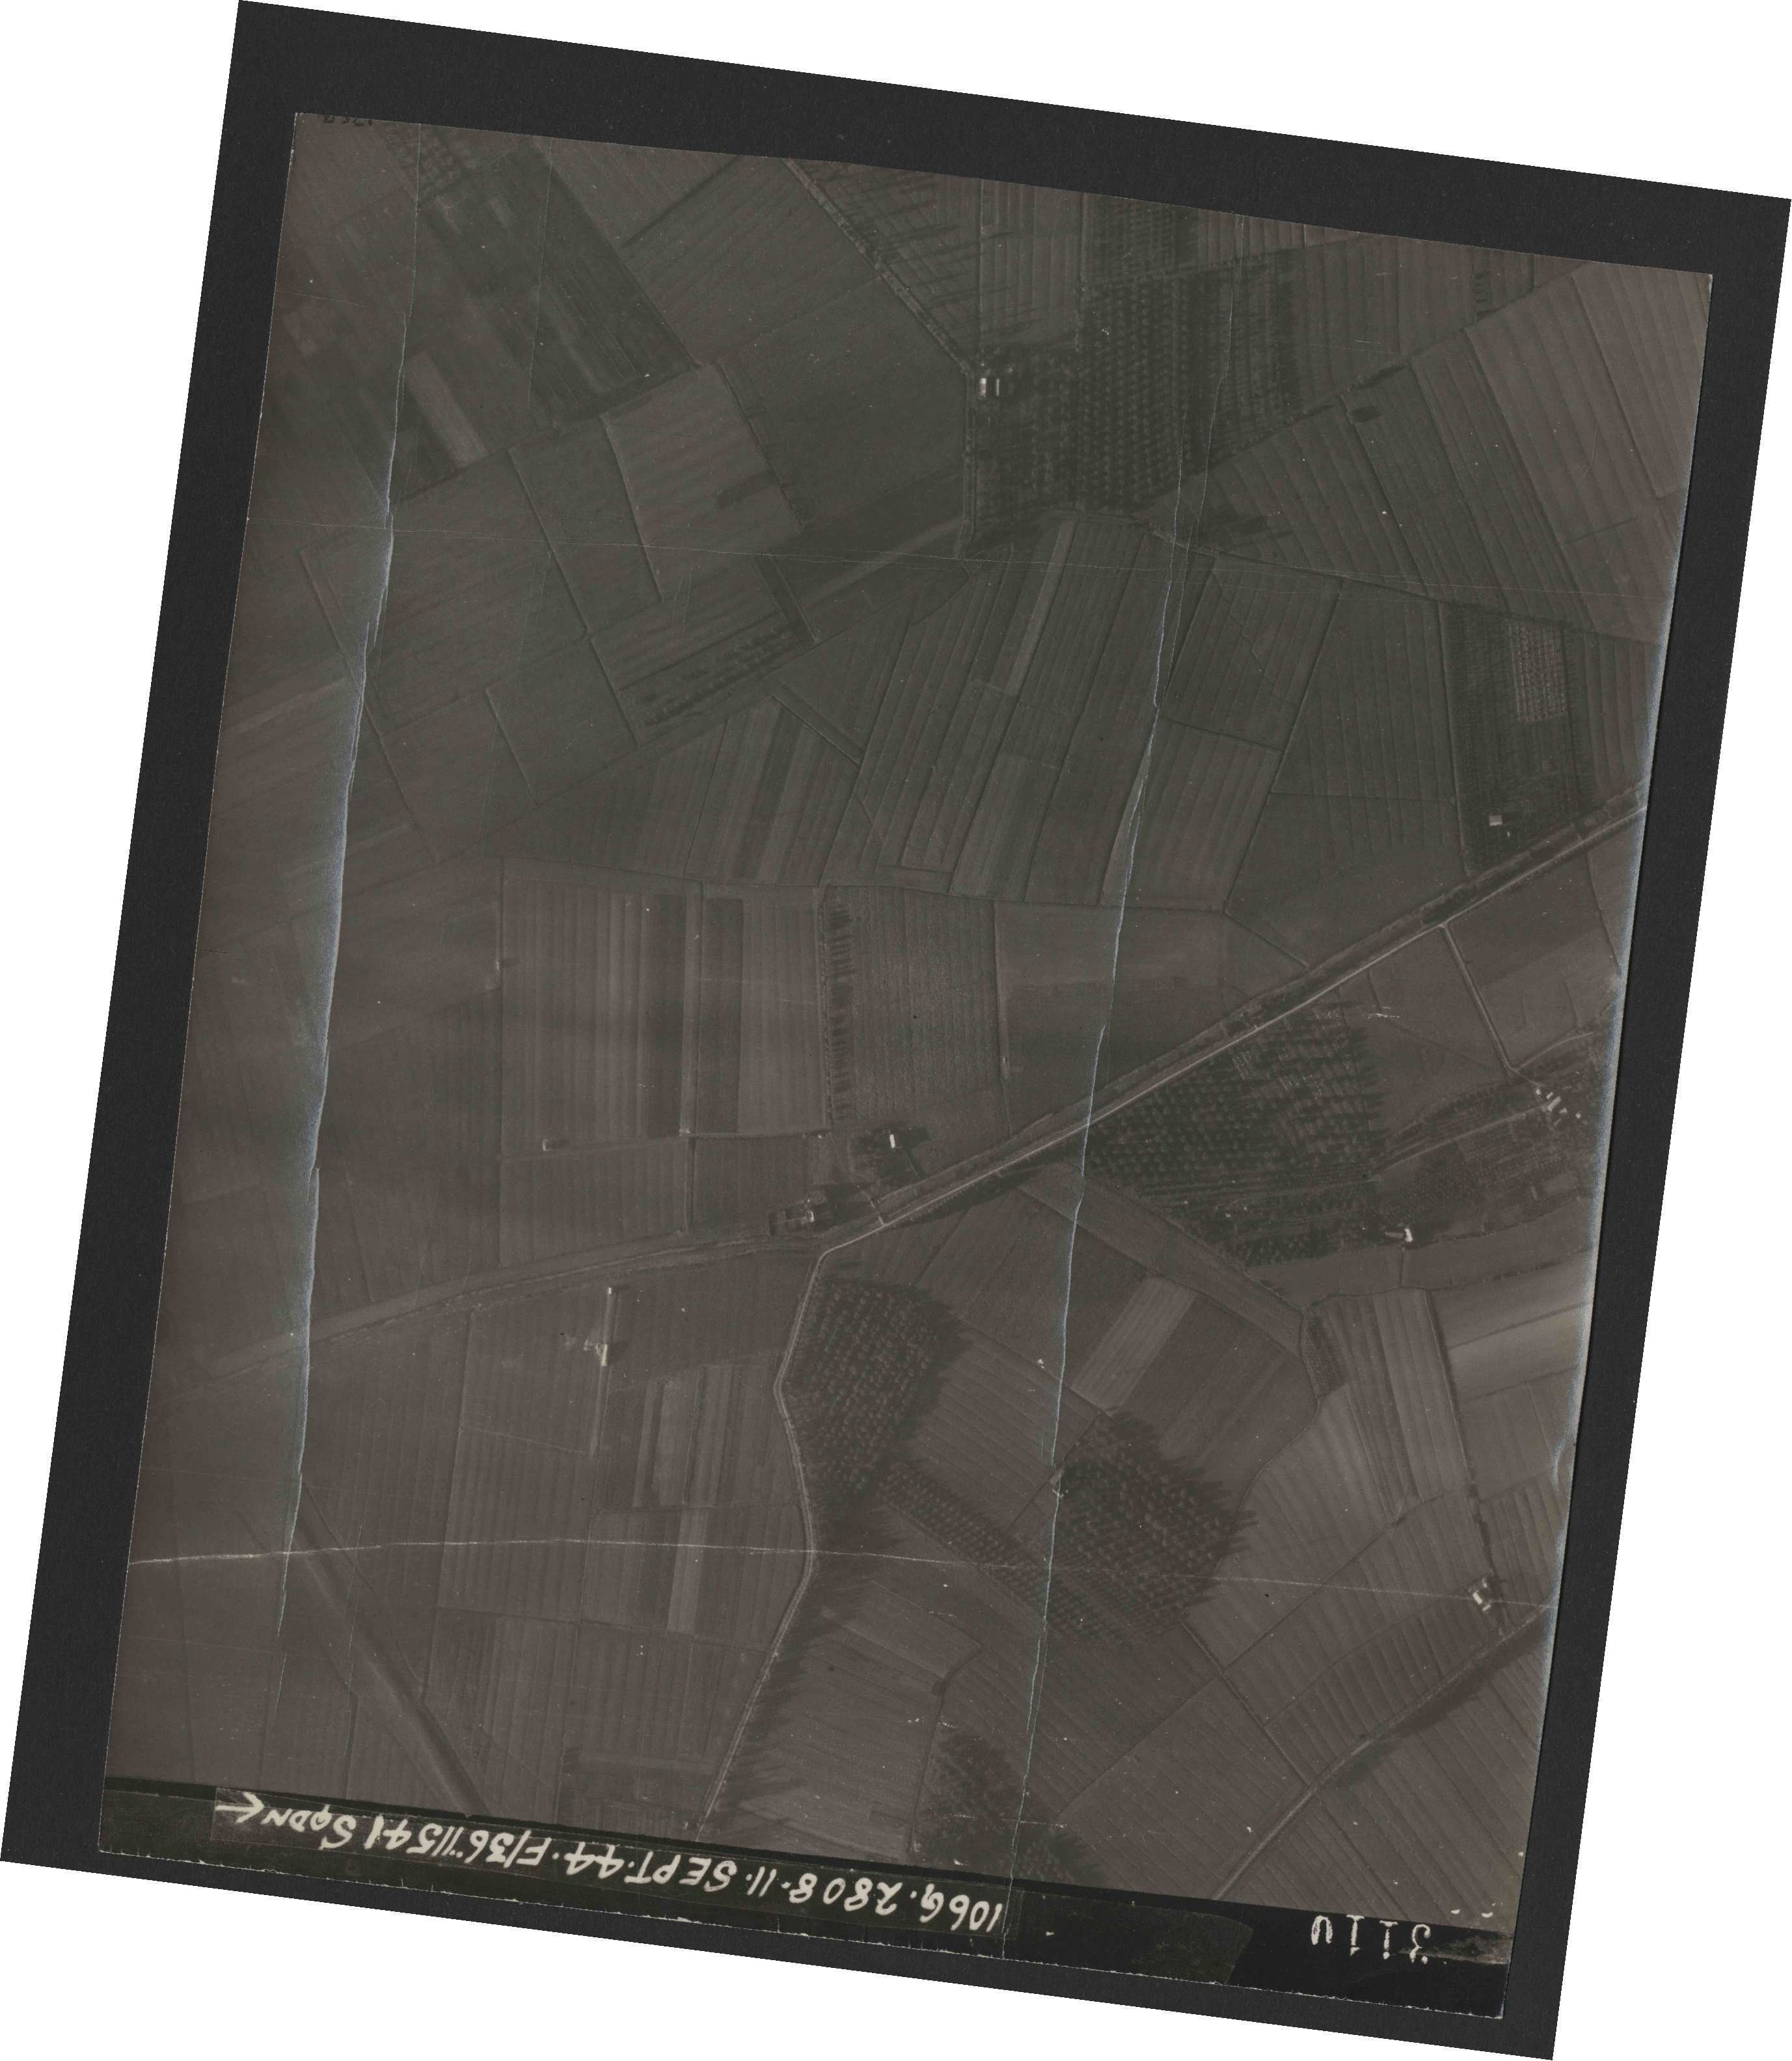 Collection RAF aerial photos 1940-1945 - flight 312, run 04, photo 3110